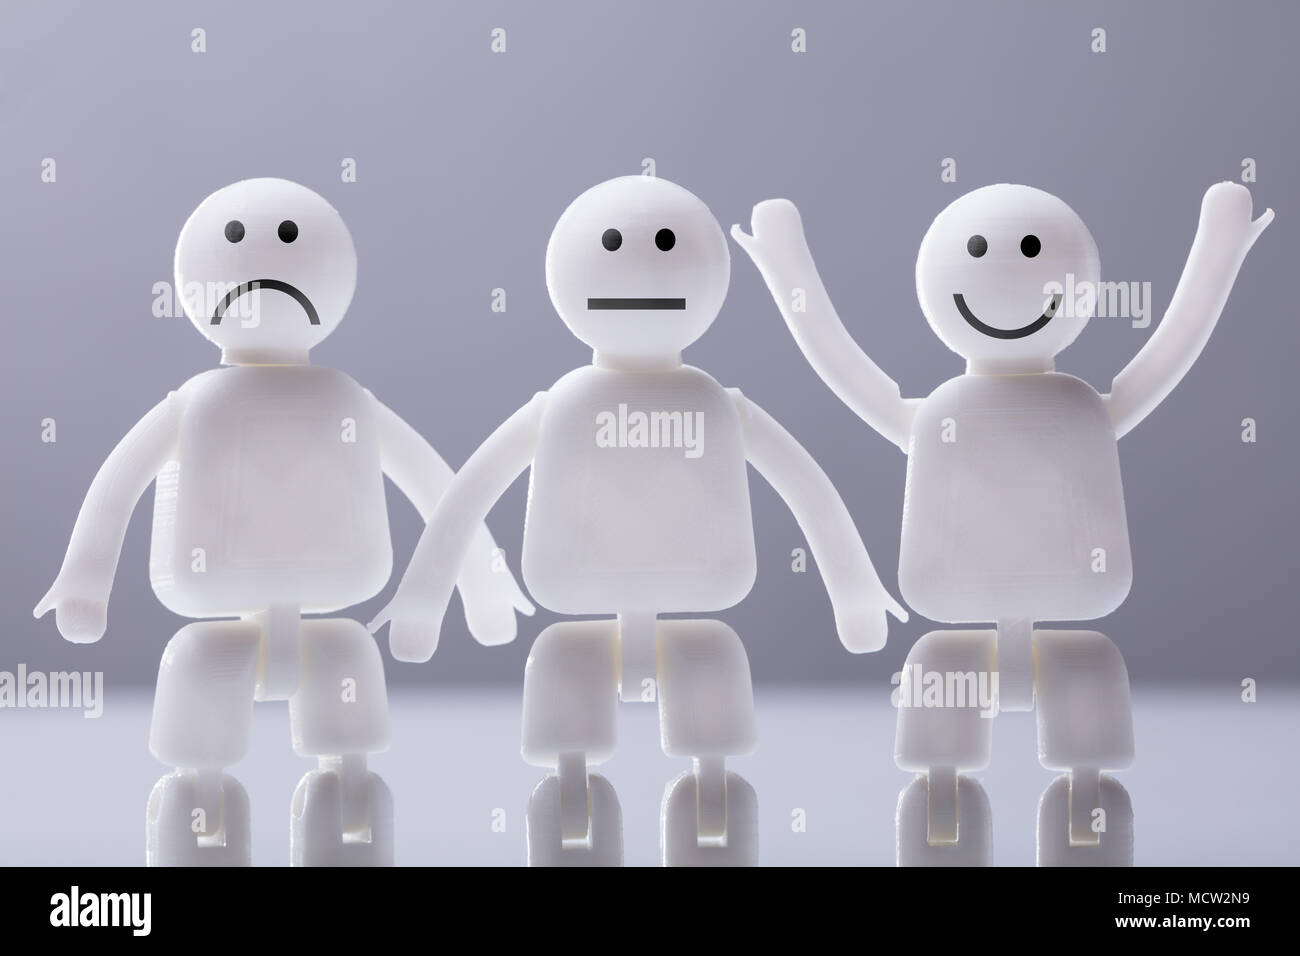 Close-up Of Three Human Figures Showing Various Facial Expressions Against Grey Background - Stock Image